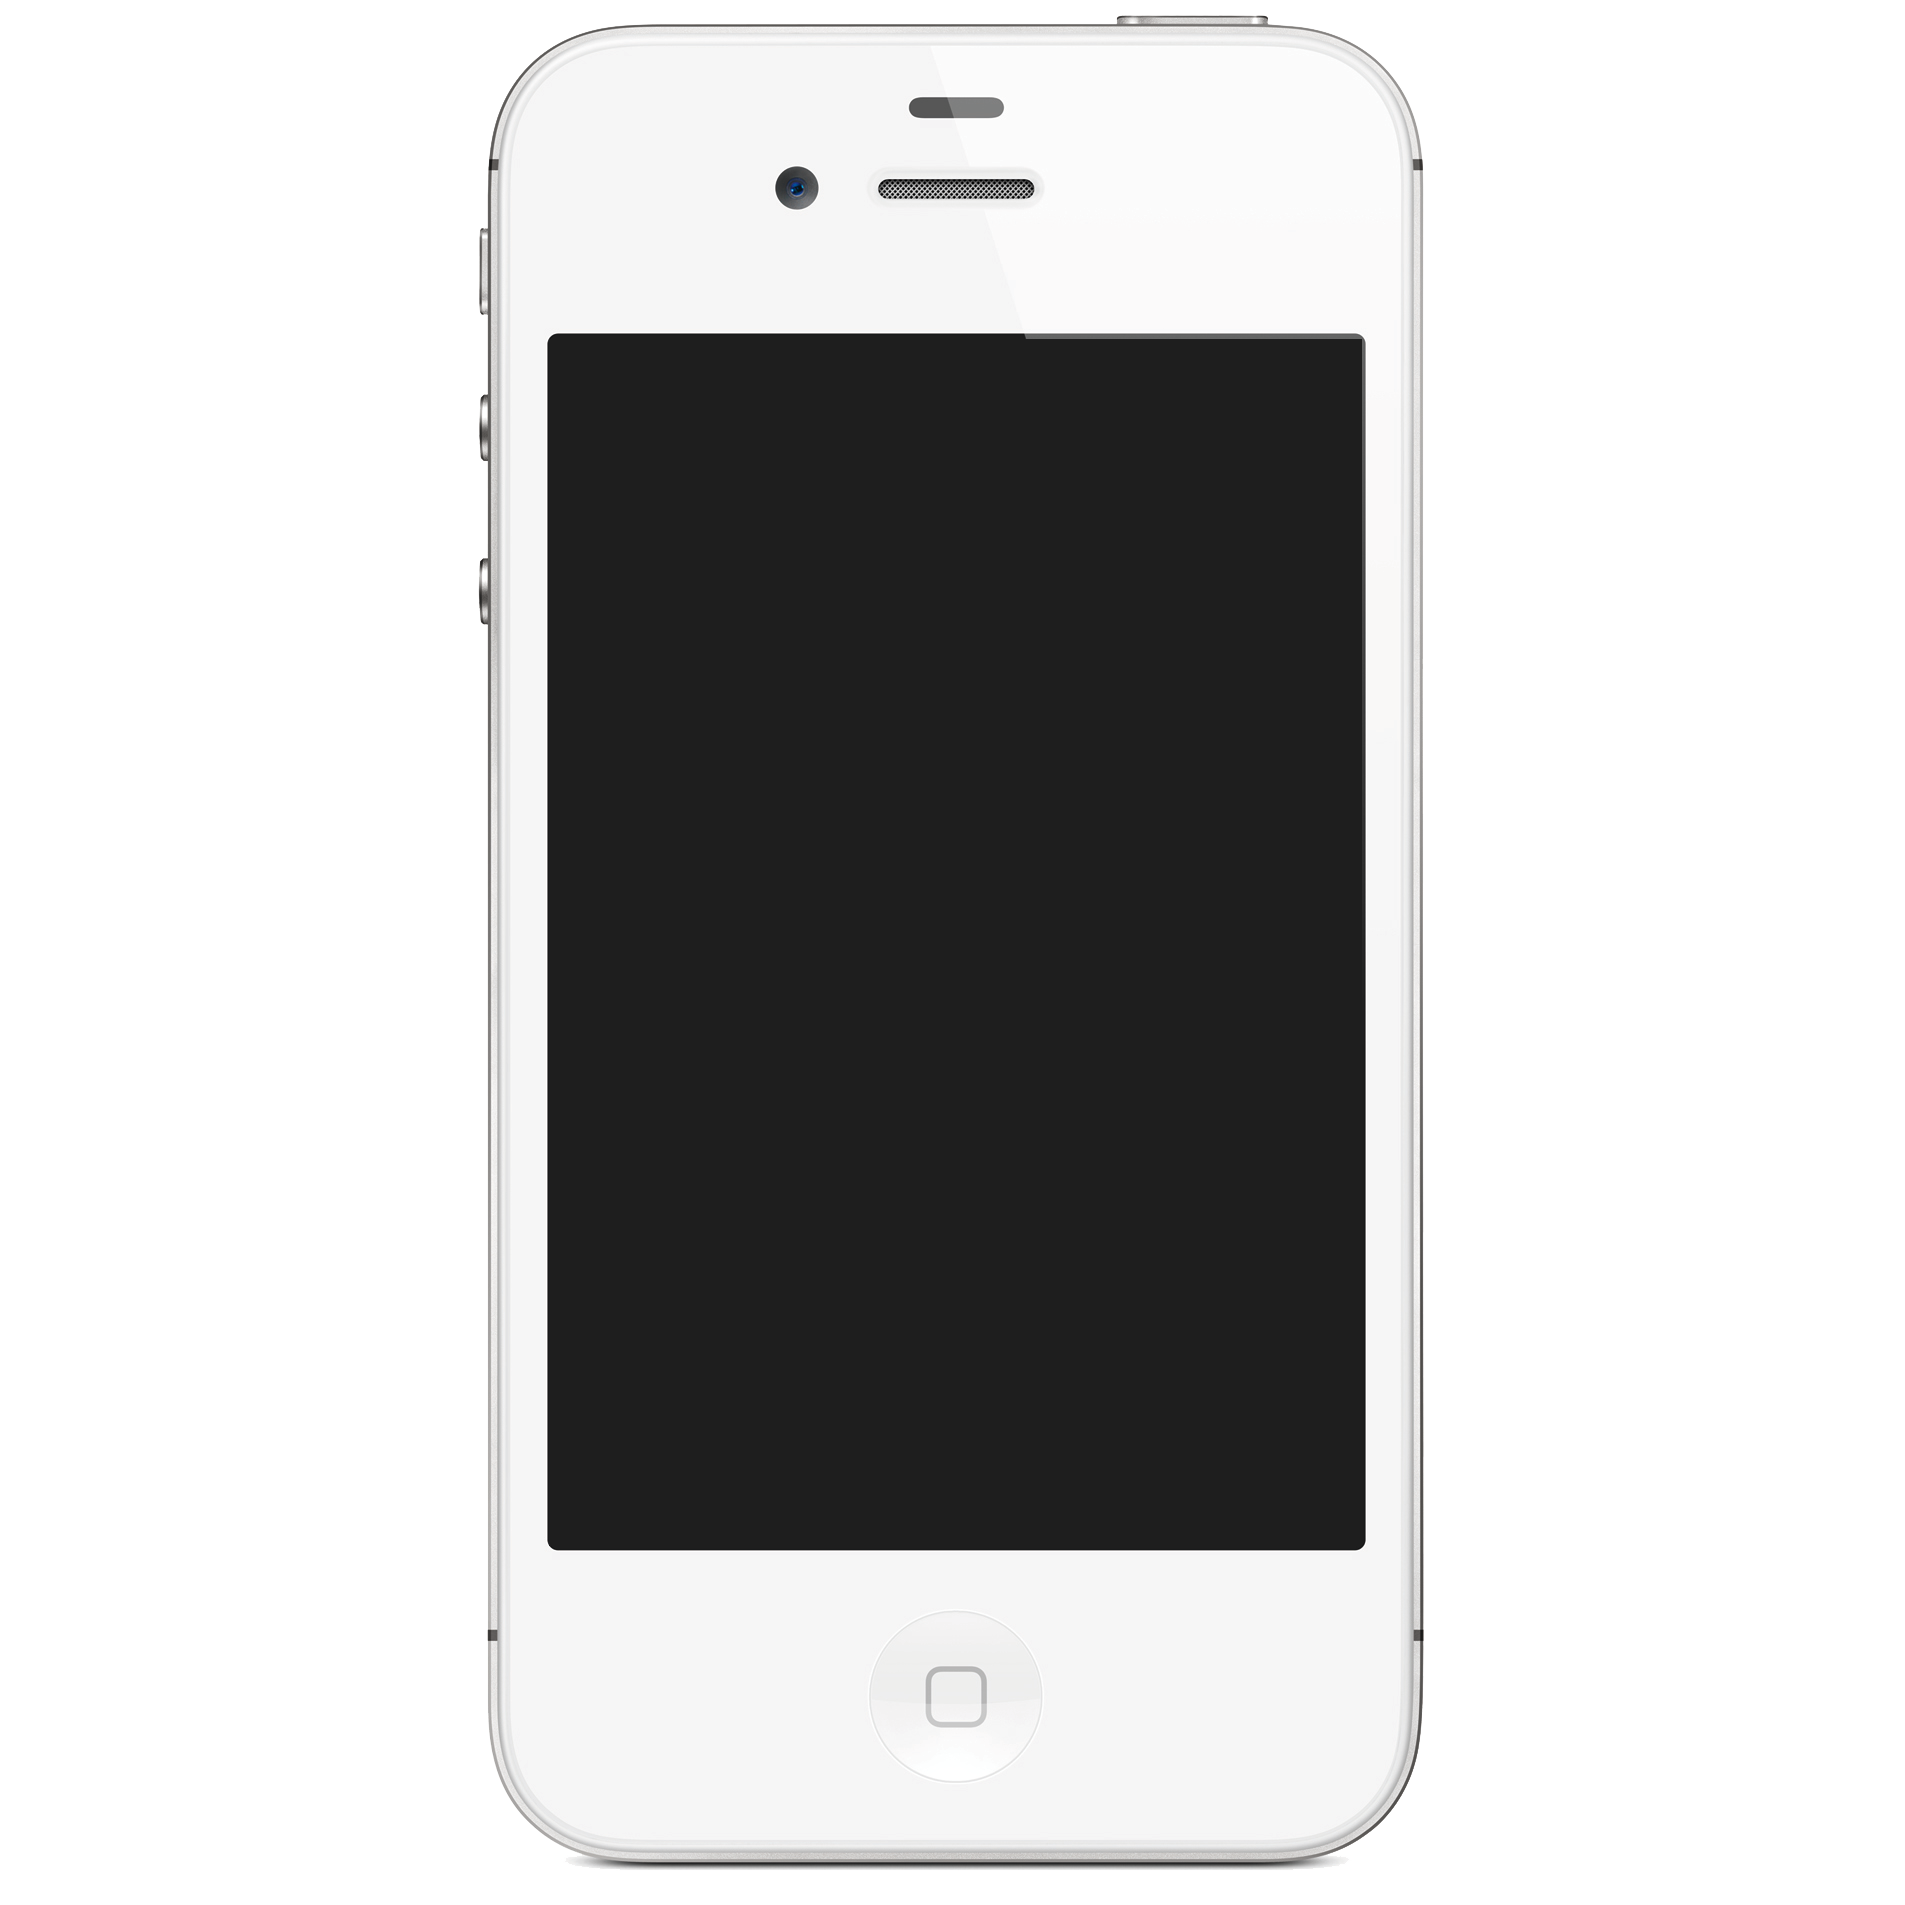 Vector Iphone Free Png Download image #22604